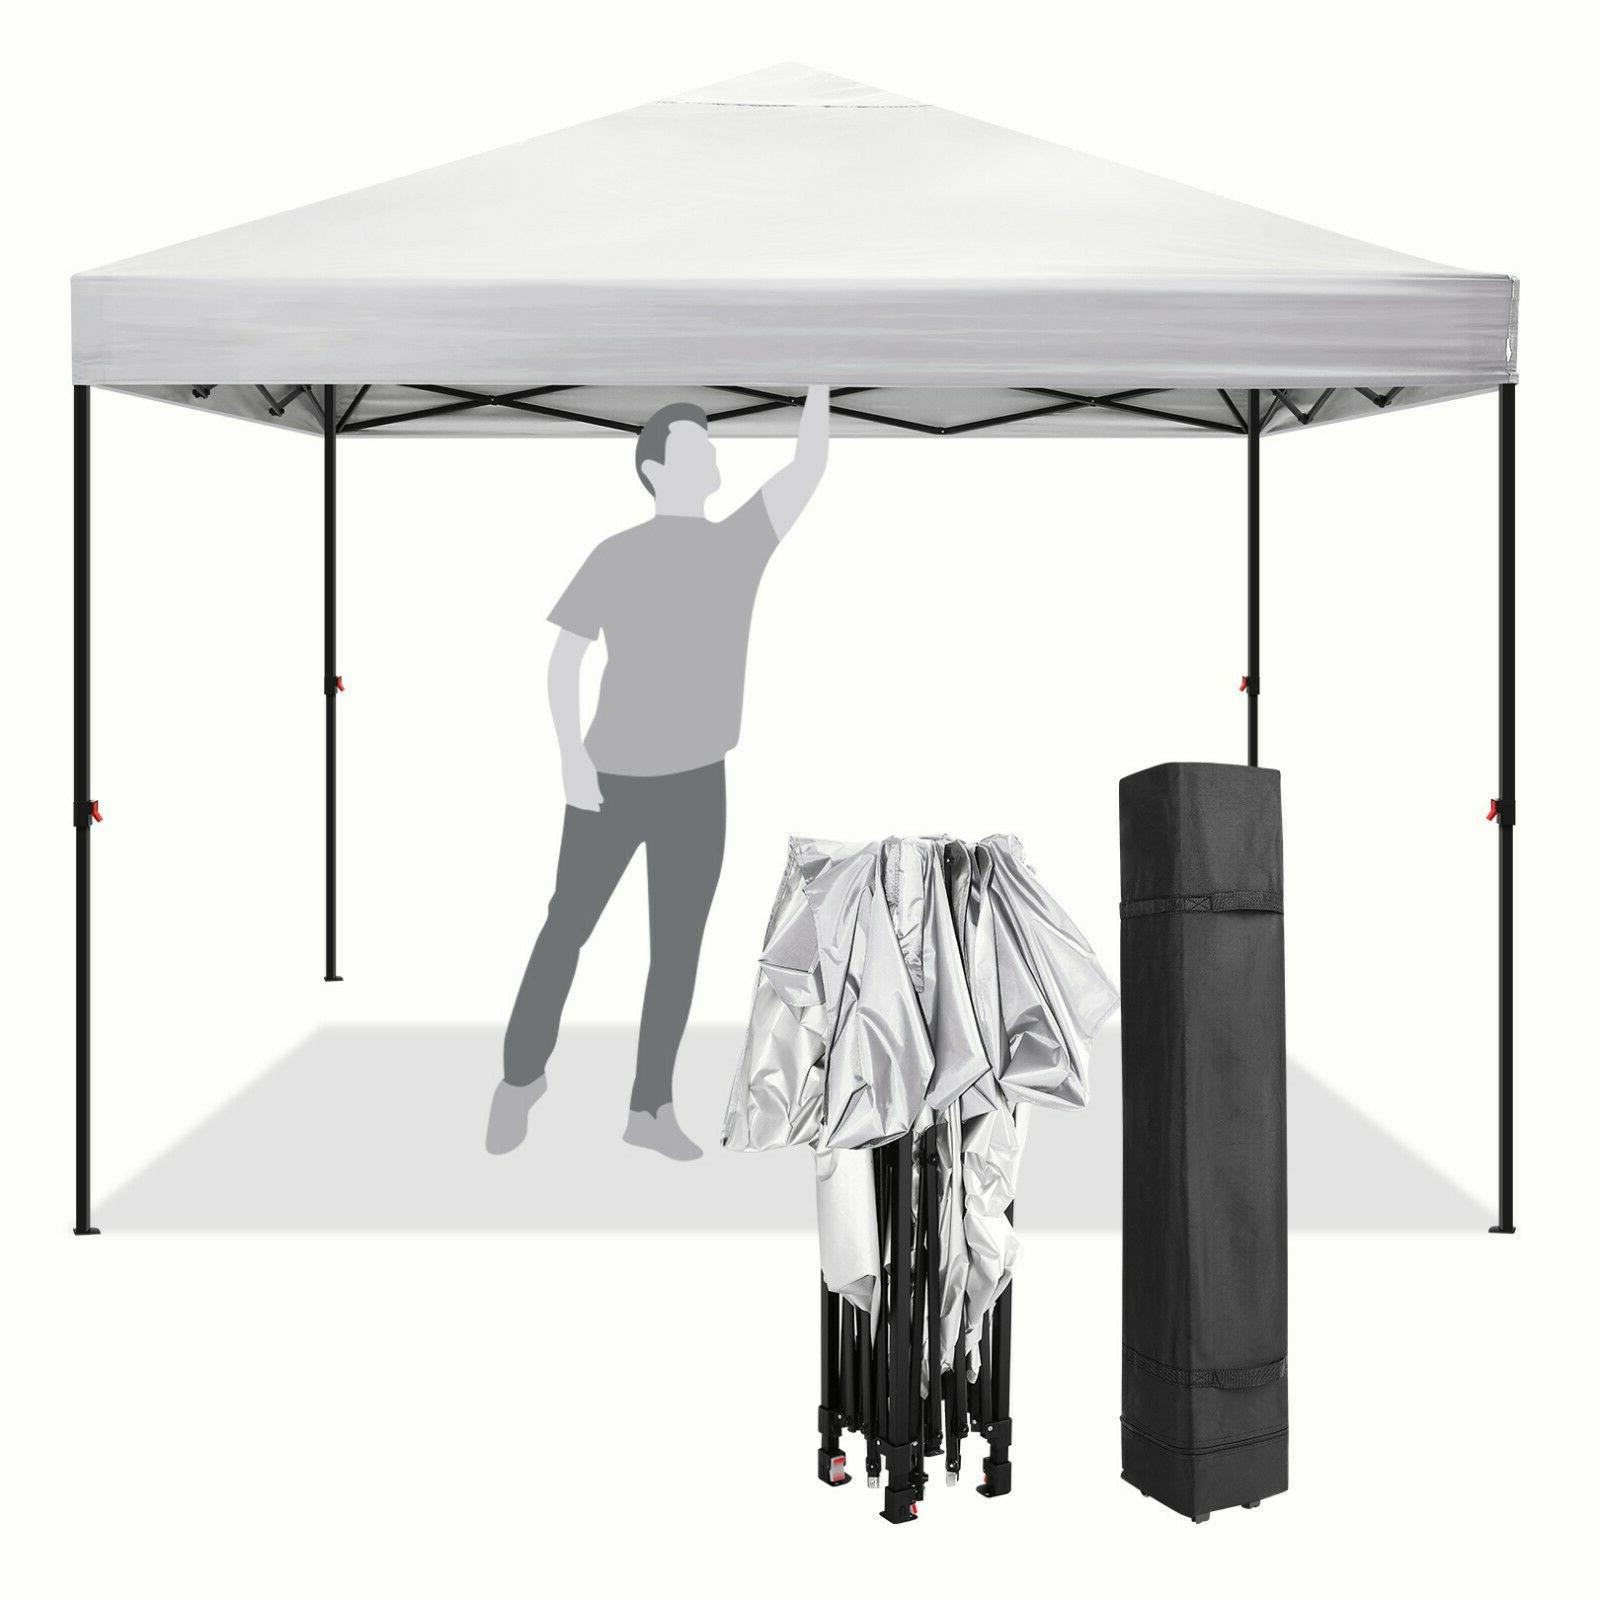 10x10ft Canopy Party with 4 Sidewalls NEW